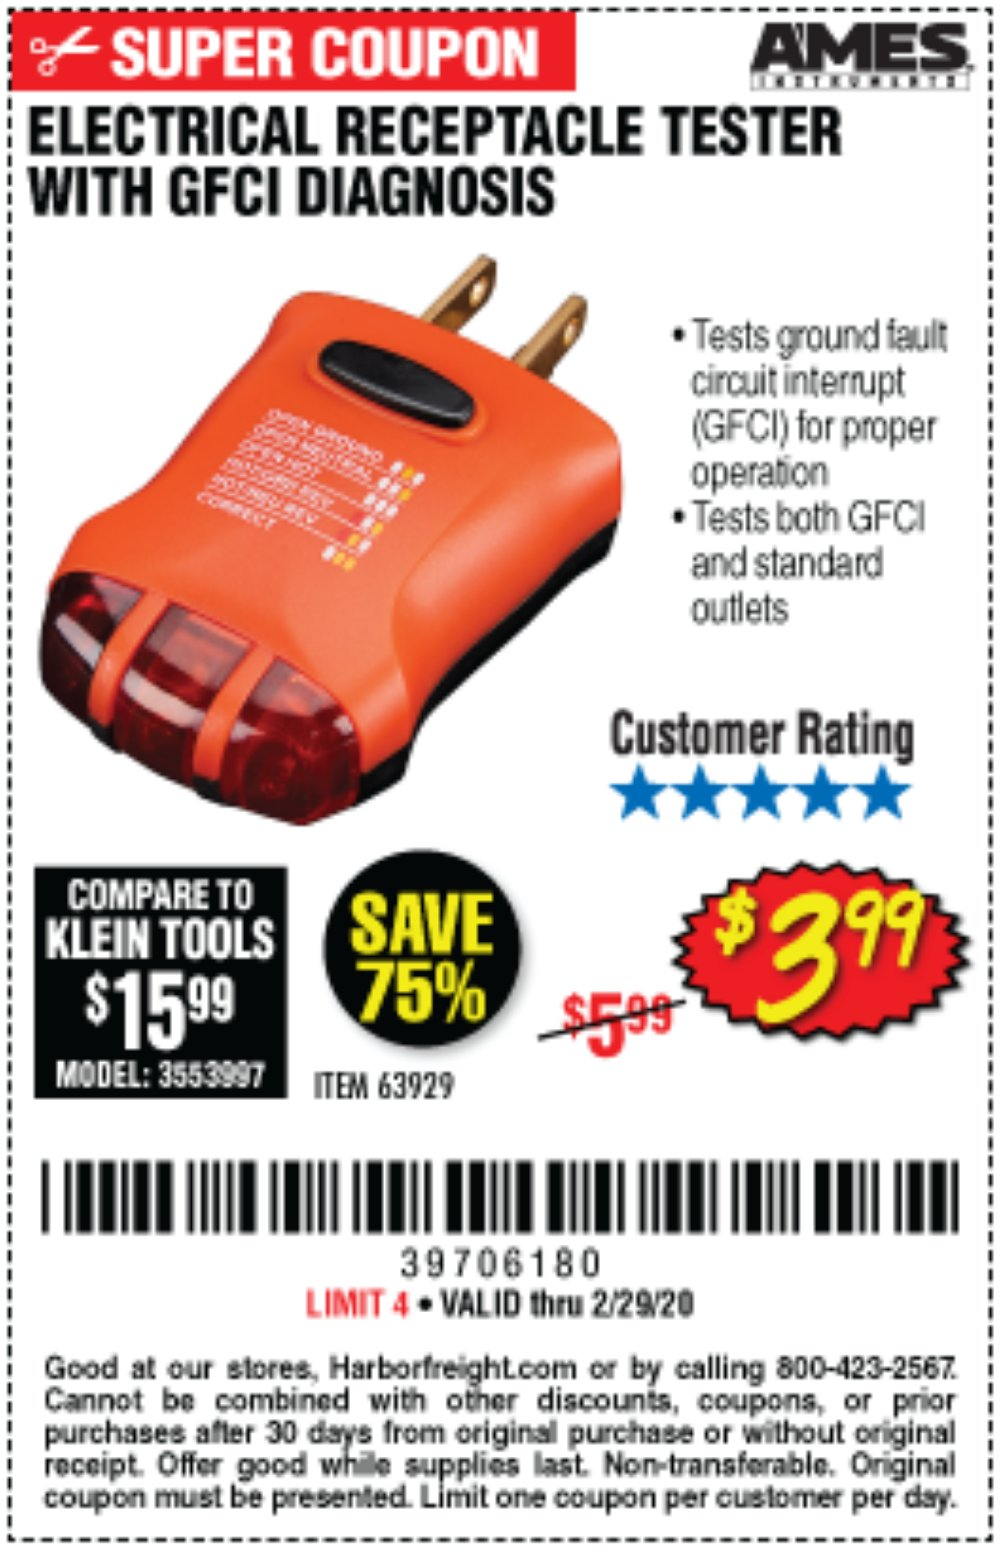 Harbor Freight Coupon, HF Coupons - Electrical Receptacle Tester With Gfci Diagnosis